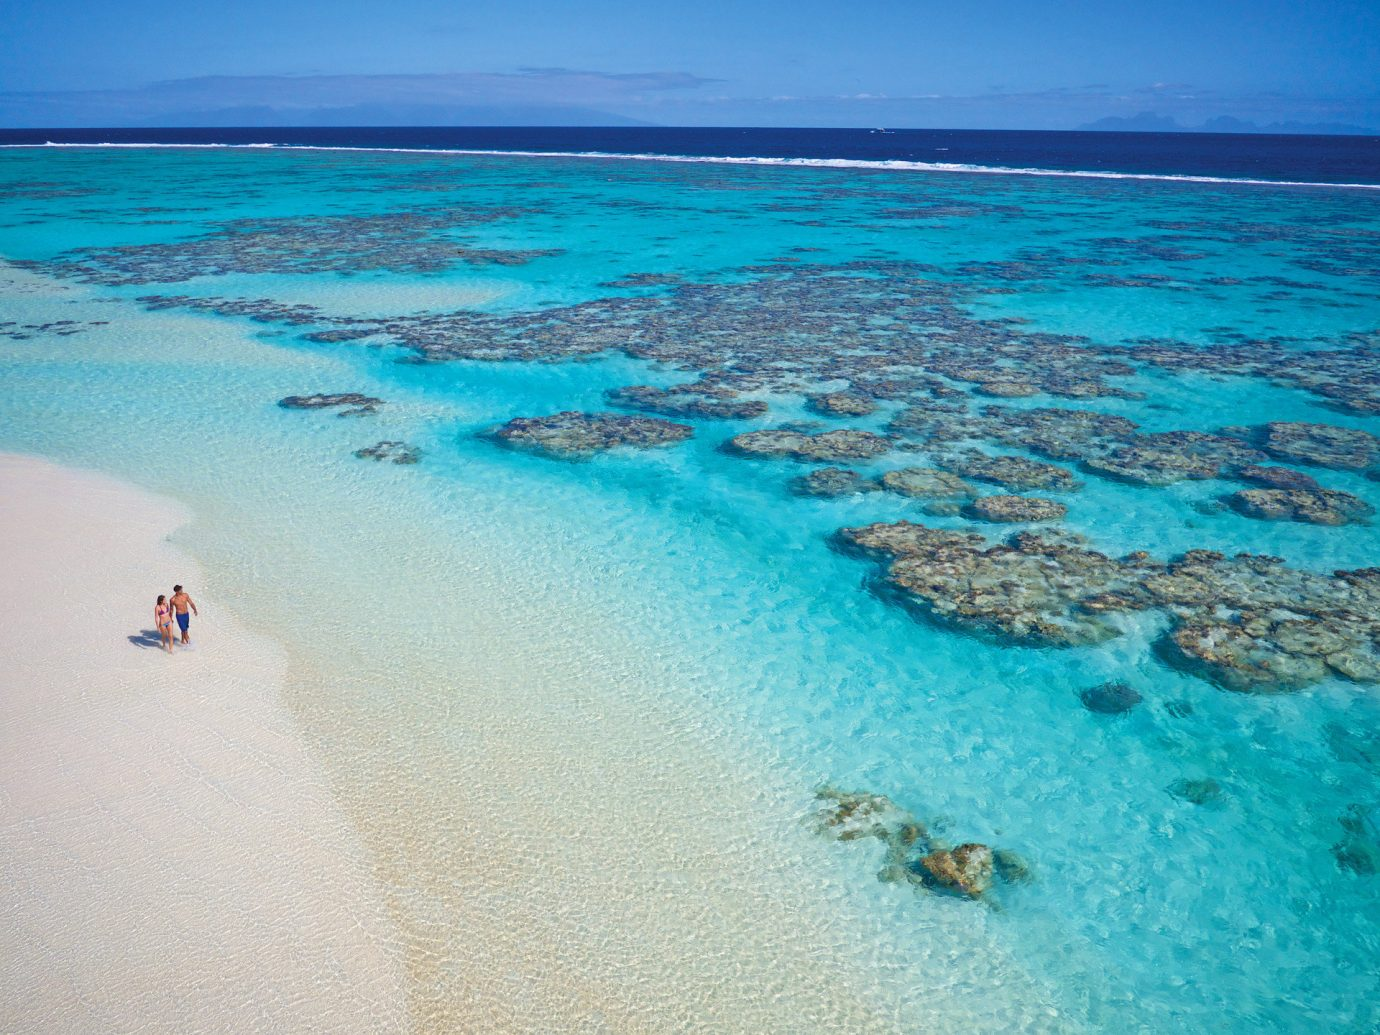 Beach clear water isolation Ocean Offbeat people remote serene Tropical turquoise walking white sands water sky outdoor Sea landform geographical feature body of water Nature shore Pool swimming Coast wind wave blue sand caribbean Lagoon wave cape reef Island bay islet sandy day